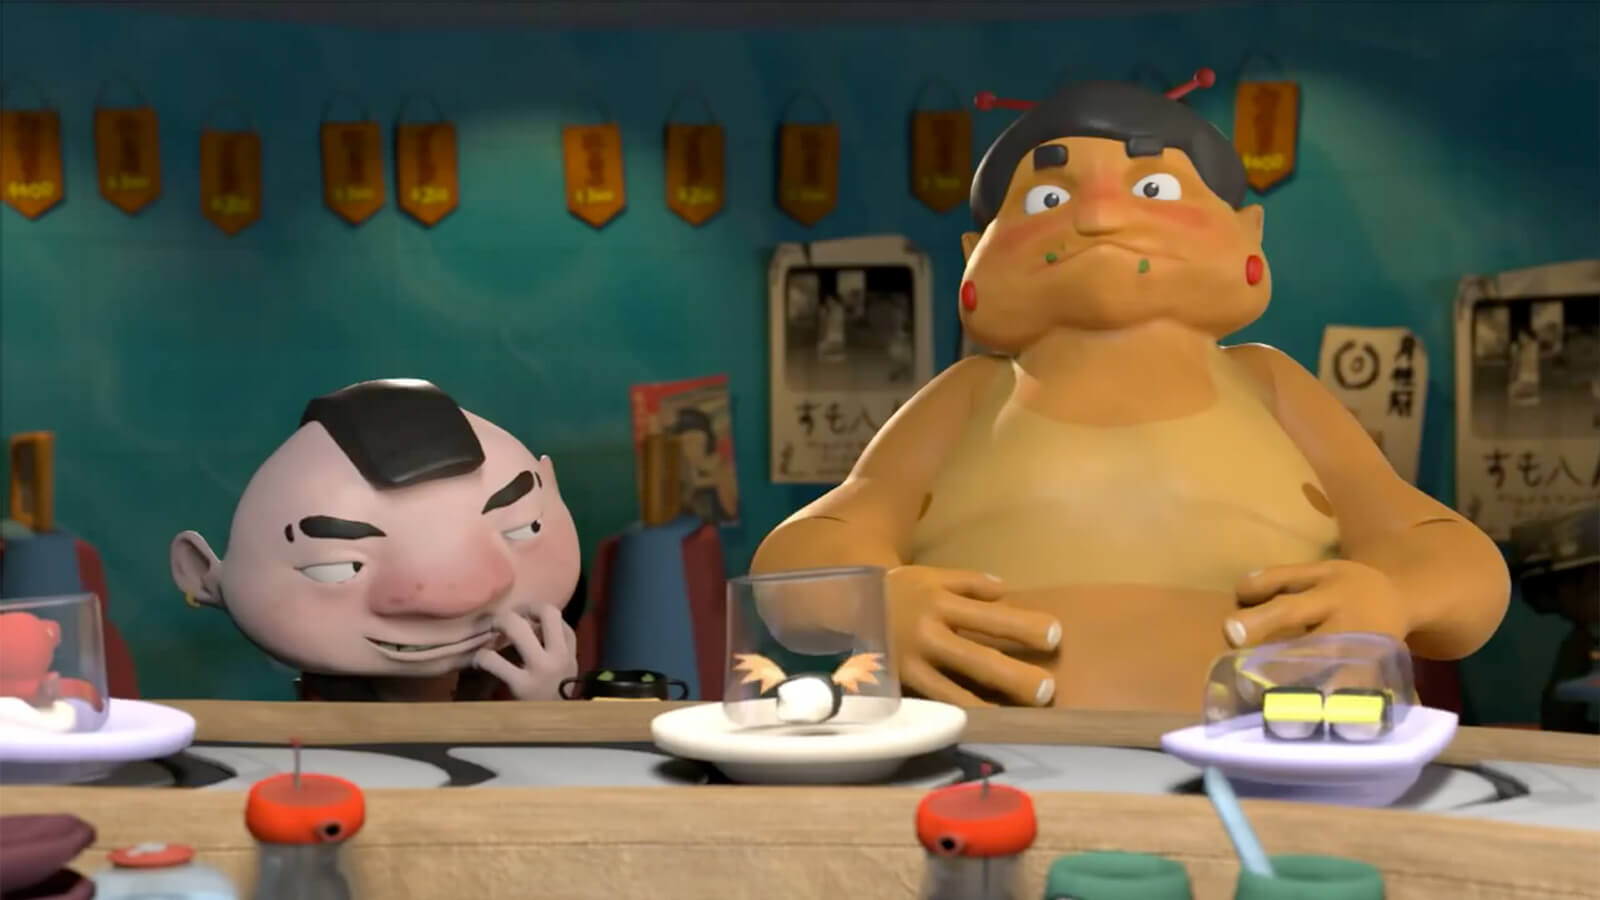 A short man looks mischievously at a shirtless sumo wrestler behind a line of conveyor belt sushi plates.